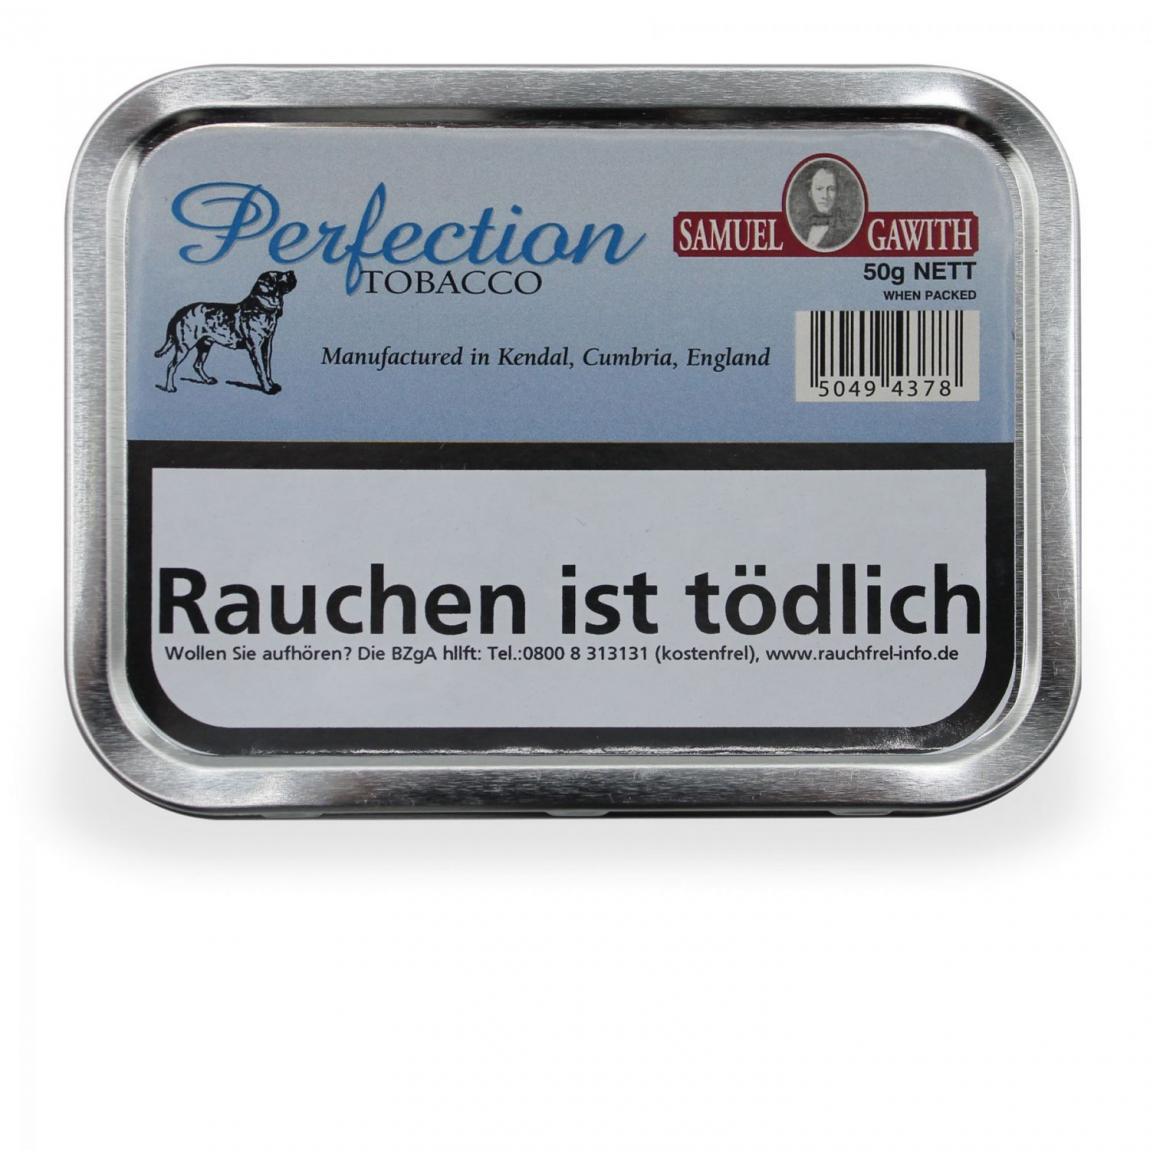 Samuel Gawith »Perfection Tobacco« 50g Dose